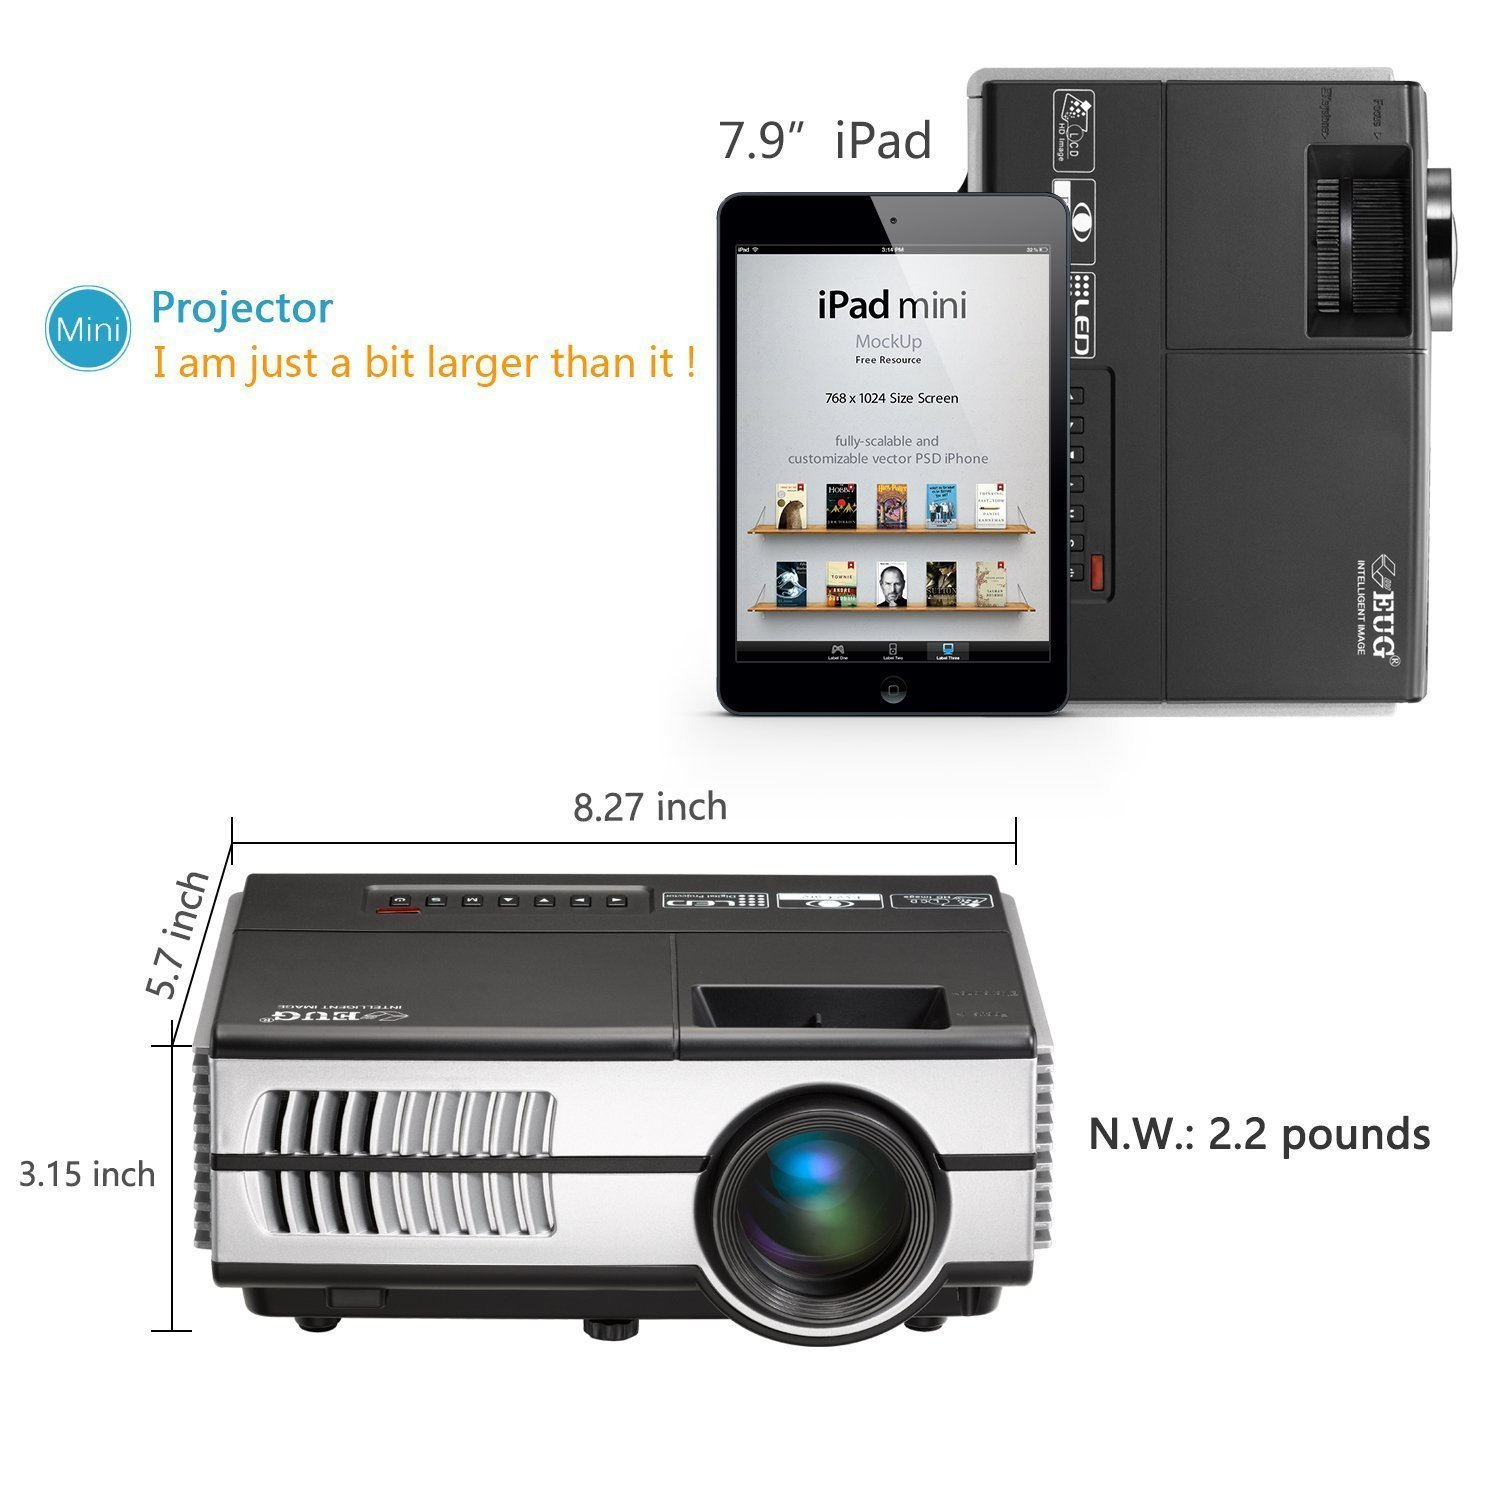 Portable Pico Mini LED Projector - Wireless WiFi Home Theater Cinema 1080P Video Games Outdoor Party Small Beamer Proyector Including USB HDMI VGA AV, 3.5mm Audio Jack by EUG (Image #9)